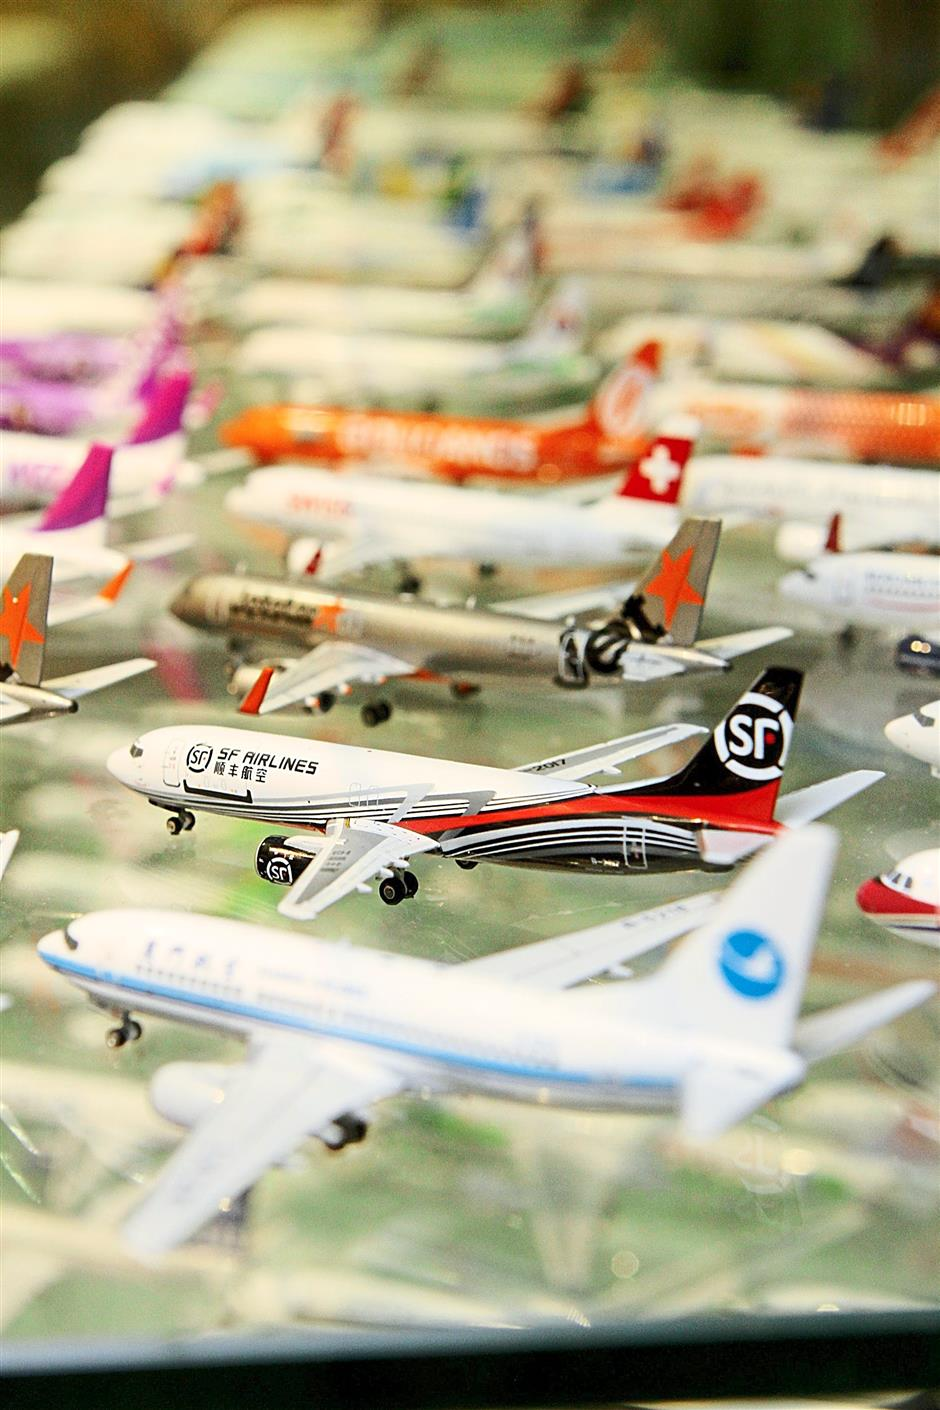 My Hobby House stocks up on a wide variety of miniature commercial airplanes for collectors and aviation enthusiasts.— Photos by Yap Chee Hong